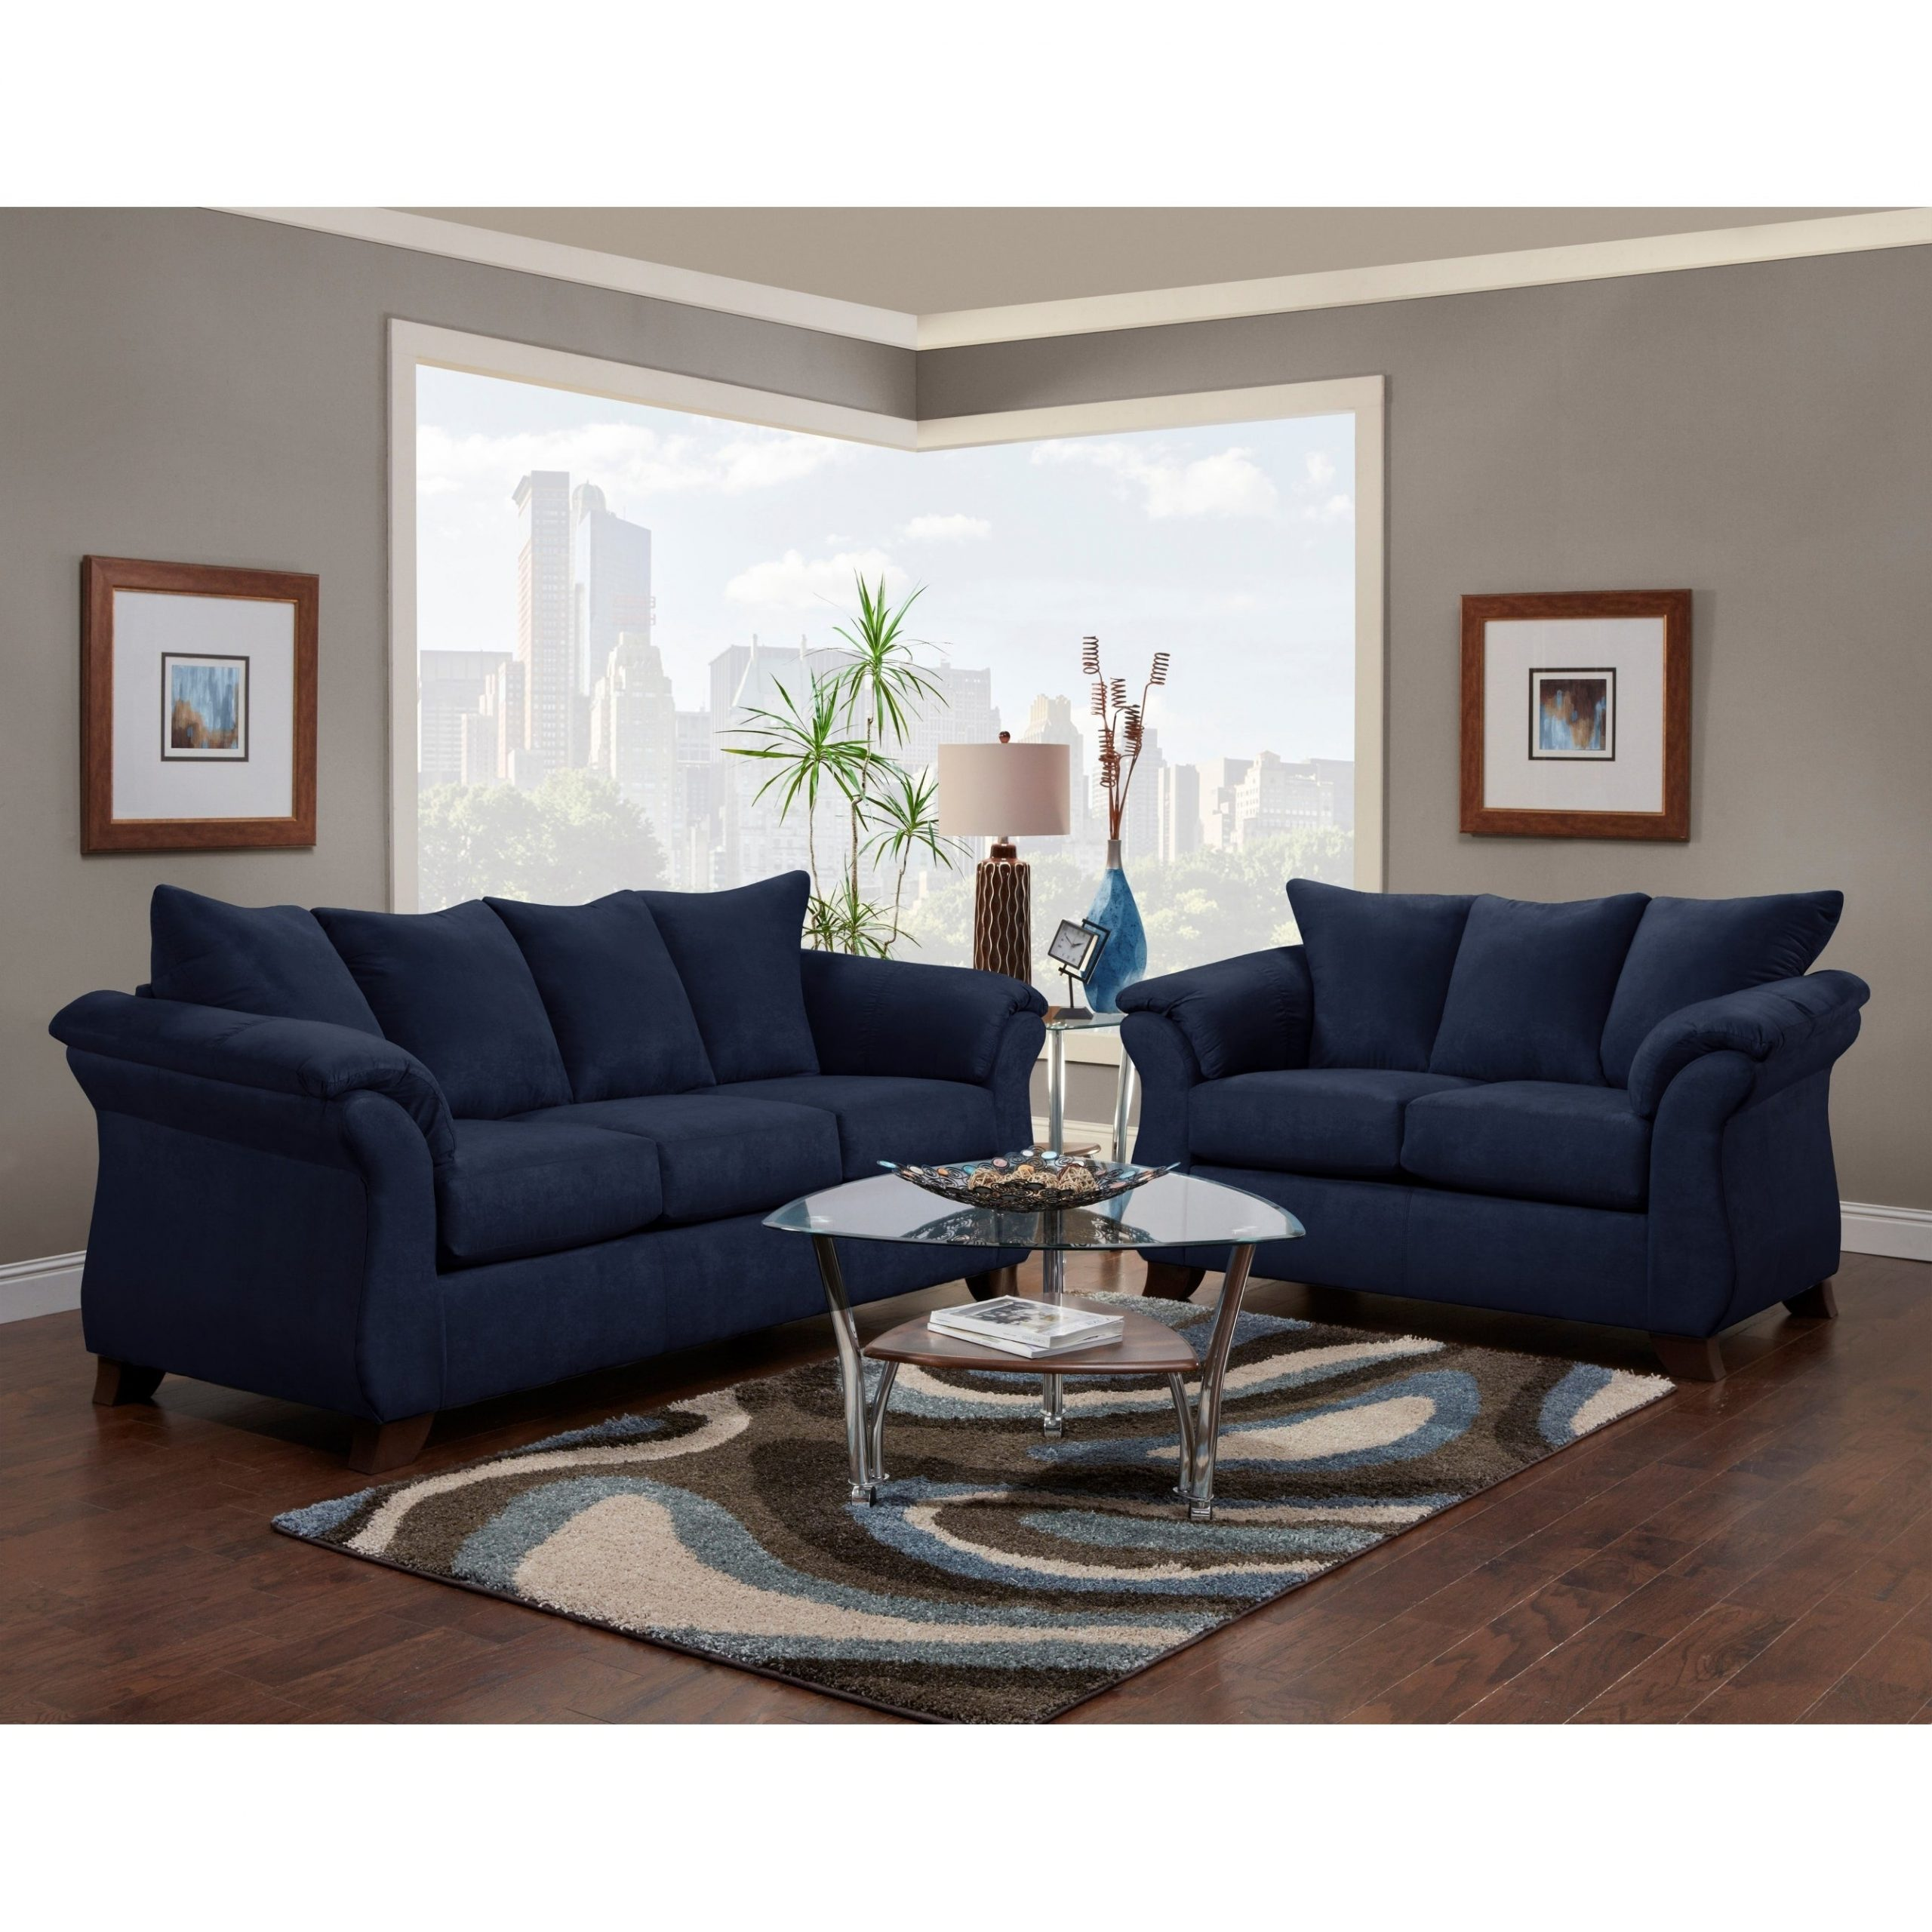 Fashionable Gracie Navy Sofas Pertaining To Navy Blue Sofa And Loveseat Blaze Navy Fabric Modern Sofa (View 16 of 20)